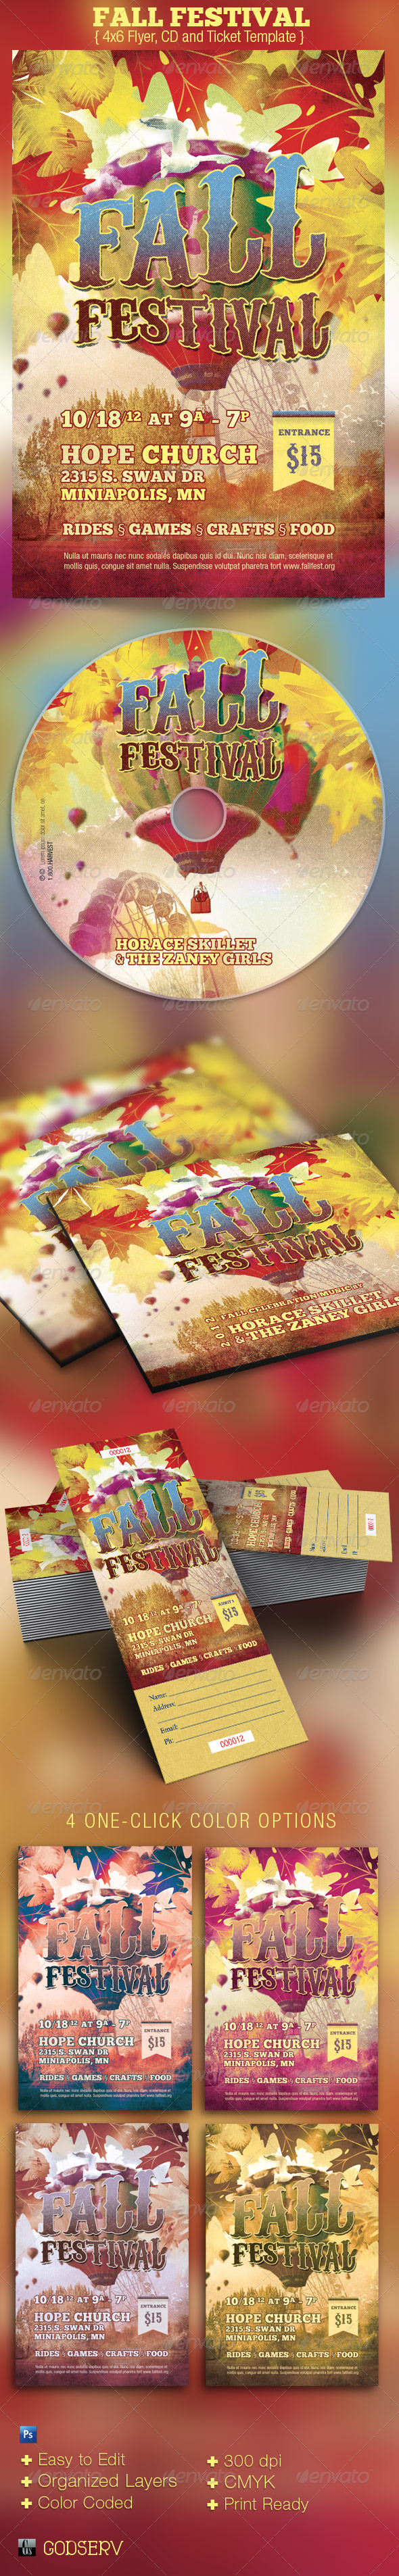 Fall Festival Flyer CD Ticket Template - Church Flyers